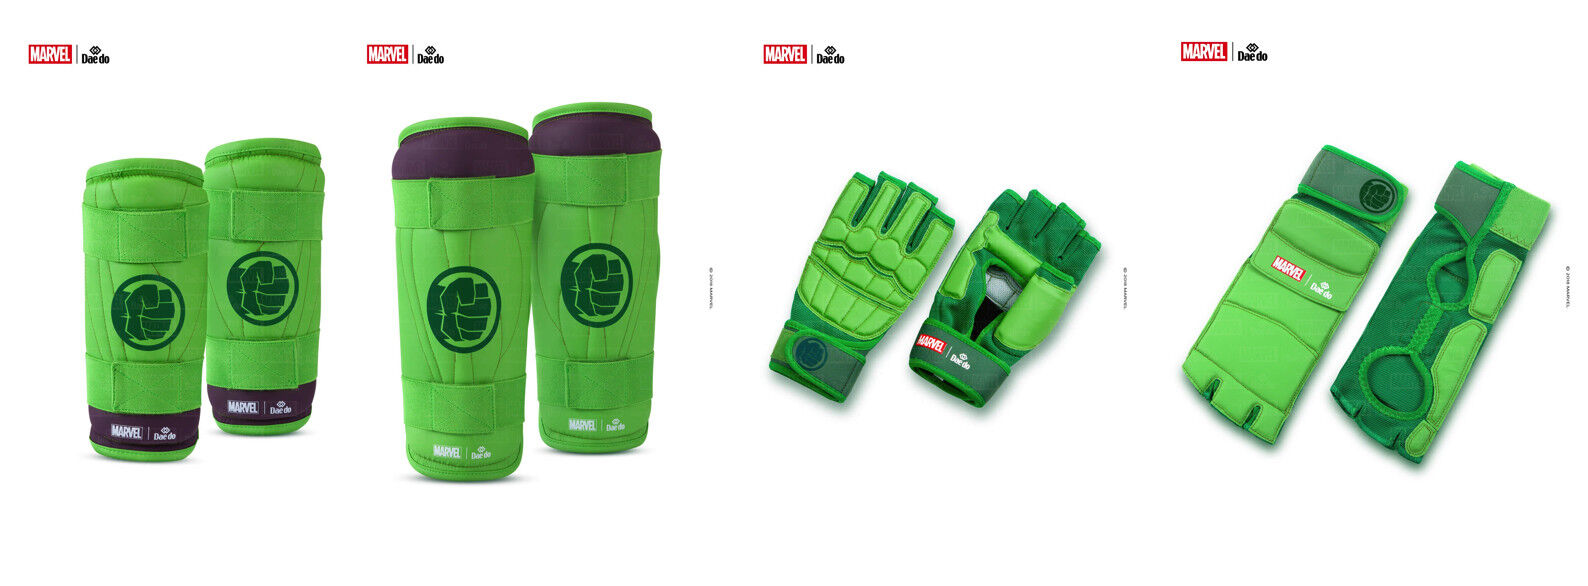 Marvel x Dae Do HULK Martial Arts Taekwondo Gear TRAINING EQUIPMENT set Size M